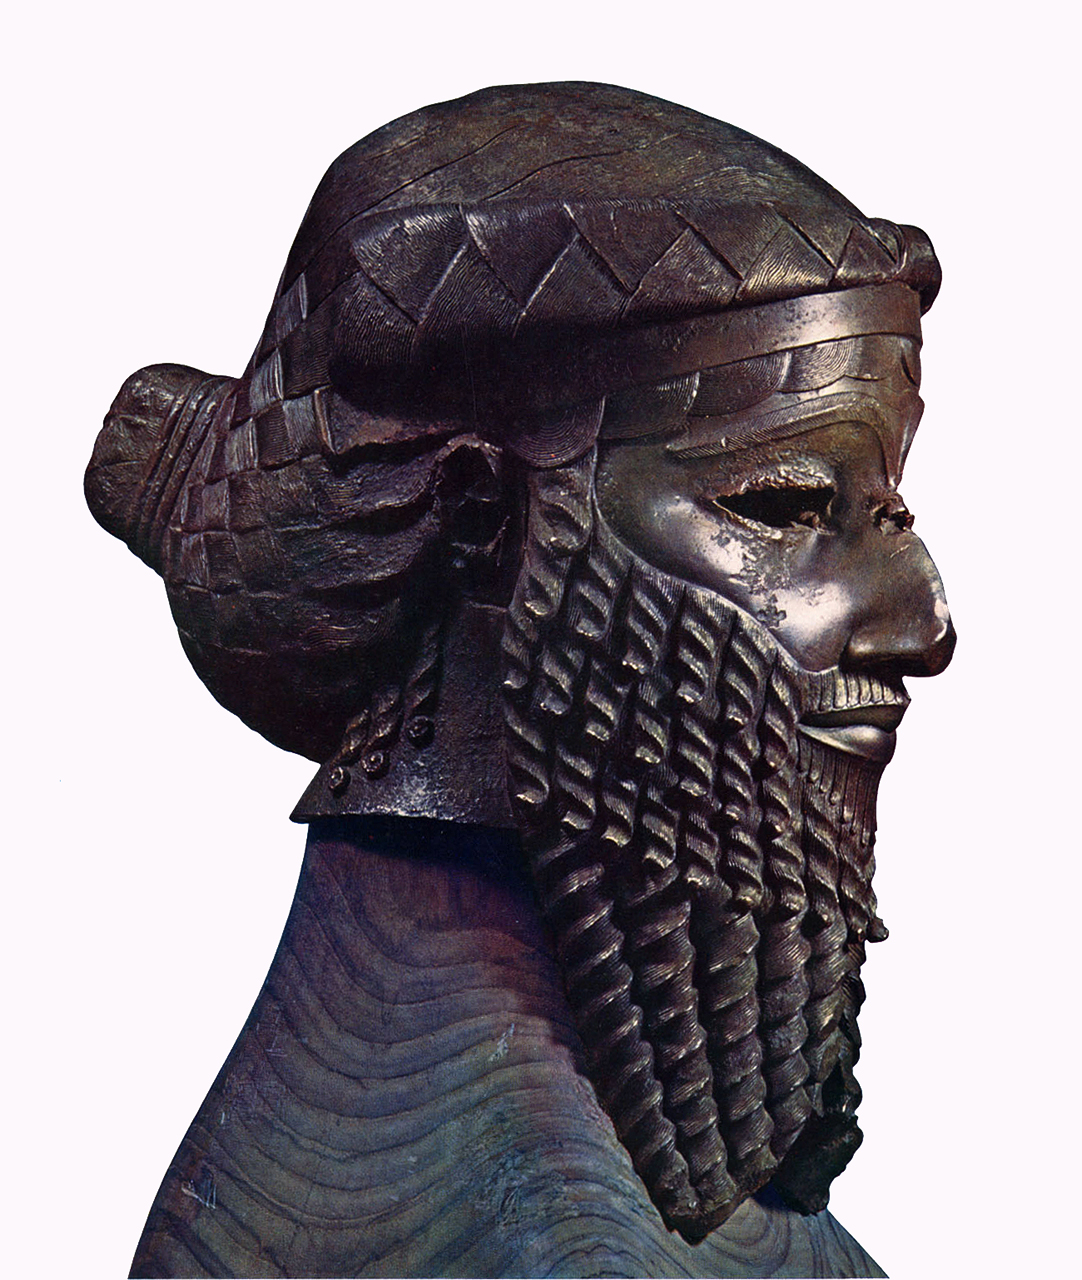 akkadian mask Sargon of akkad, who came into power in the akkadian period, the rise of human sovereigns led to the creation of royal portraits that glorified earthly rulers.